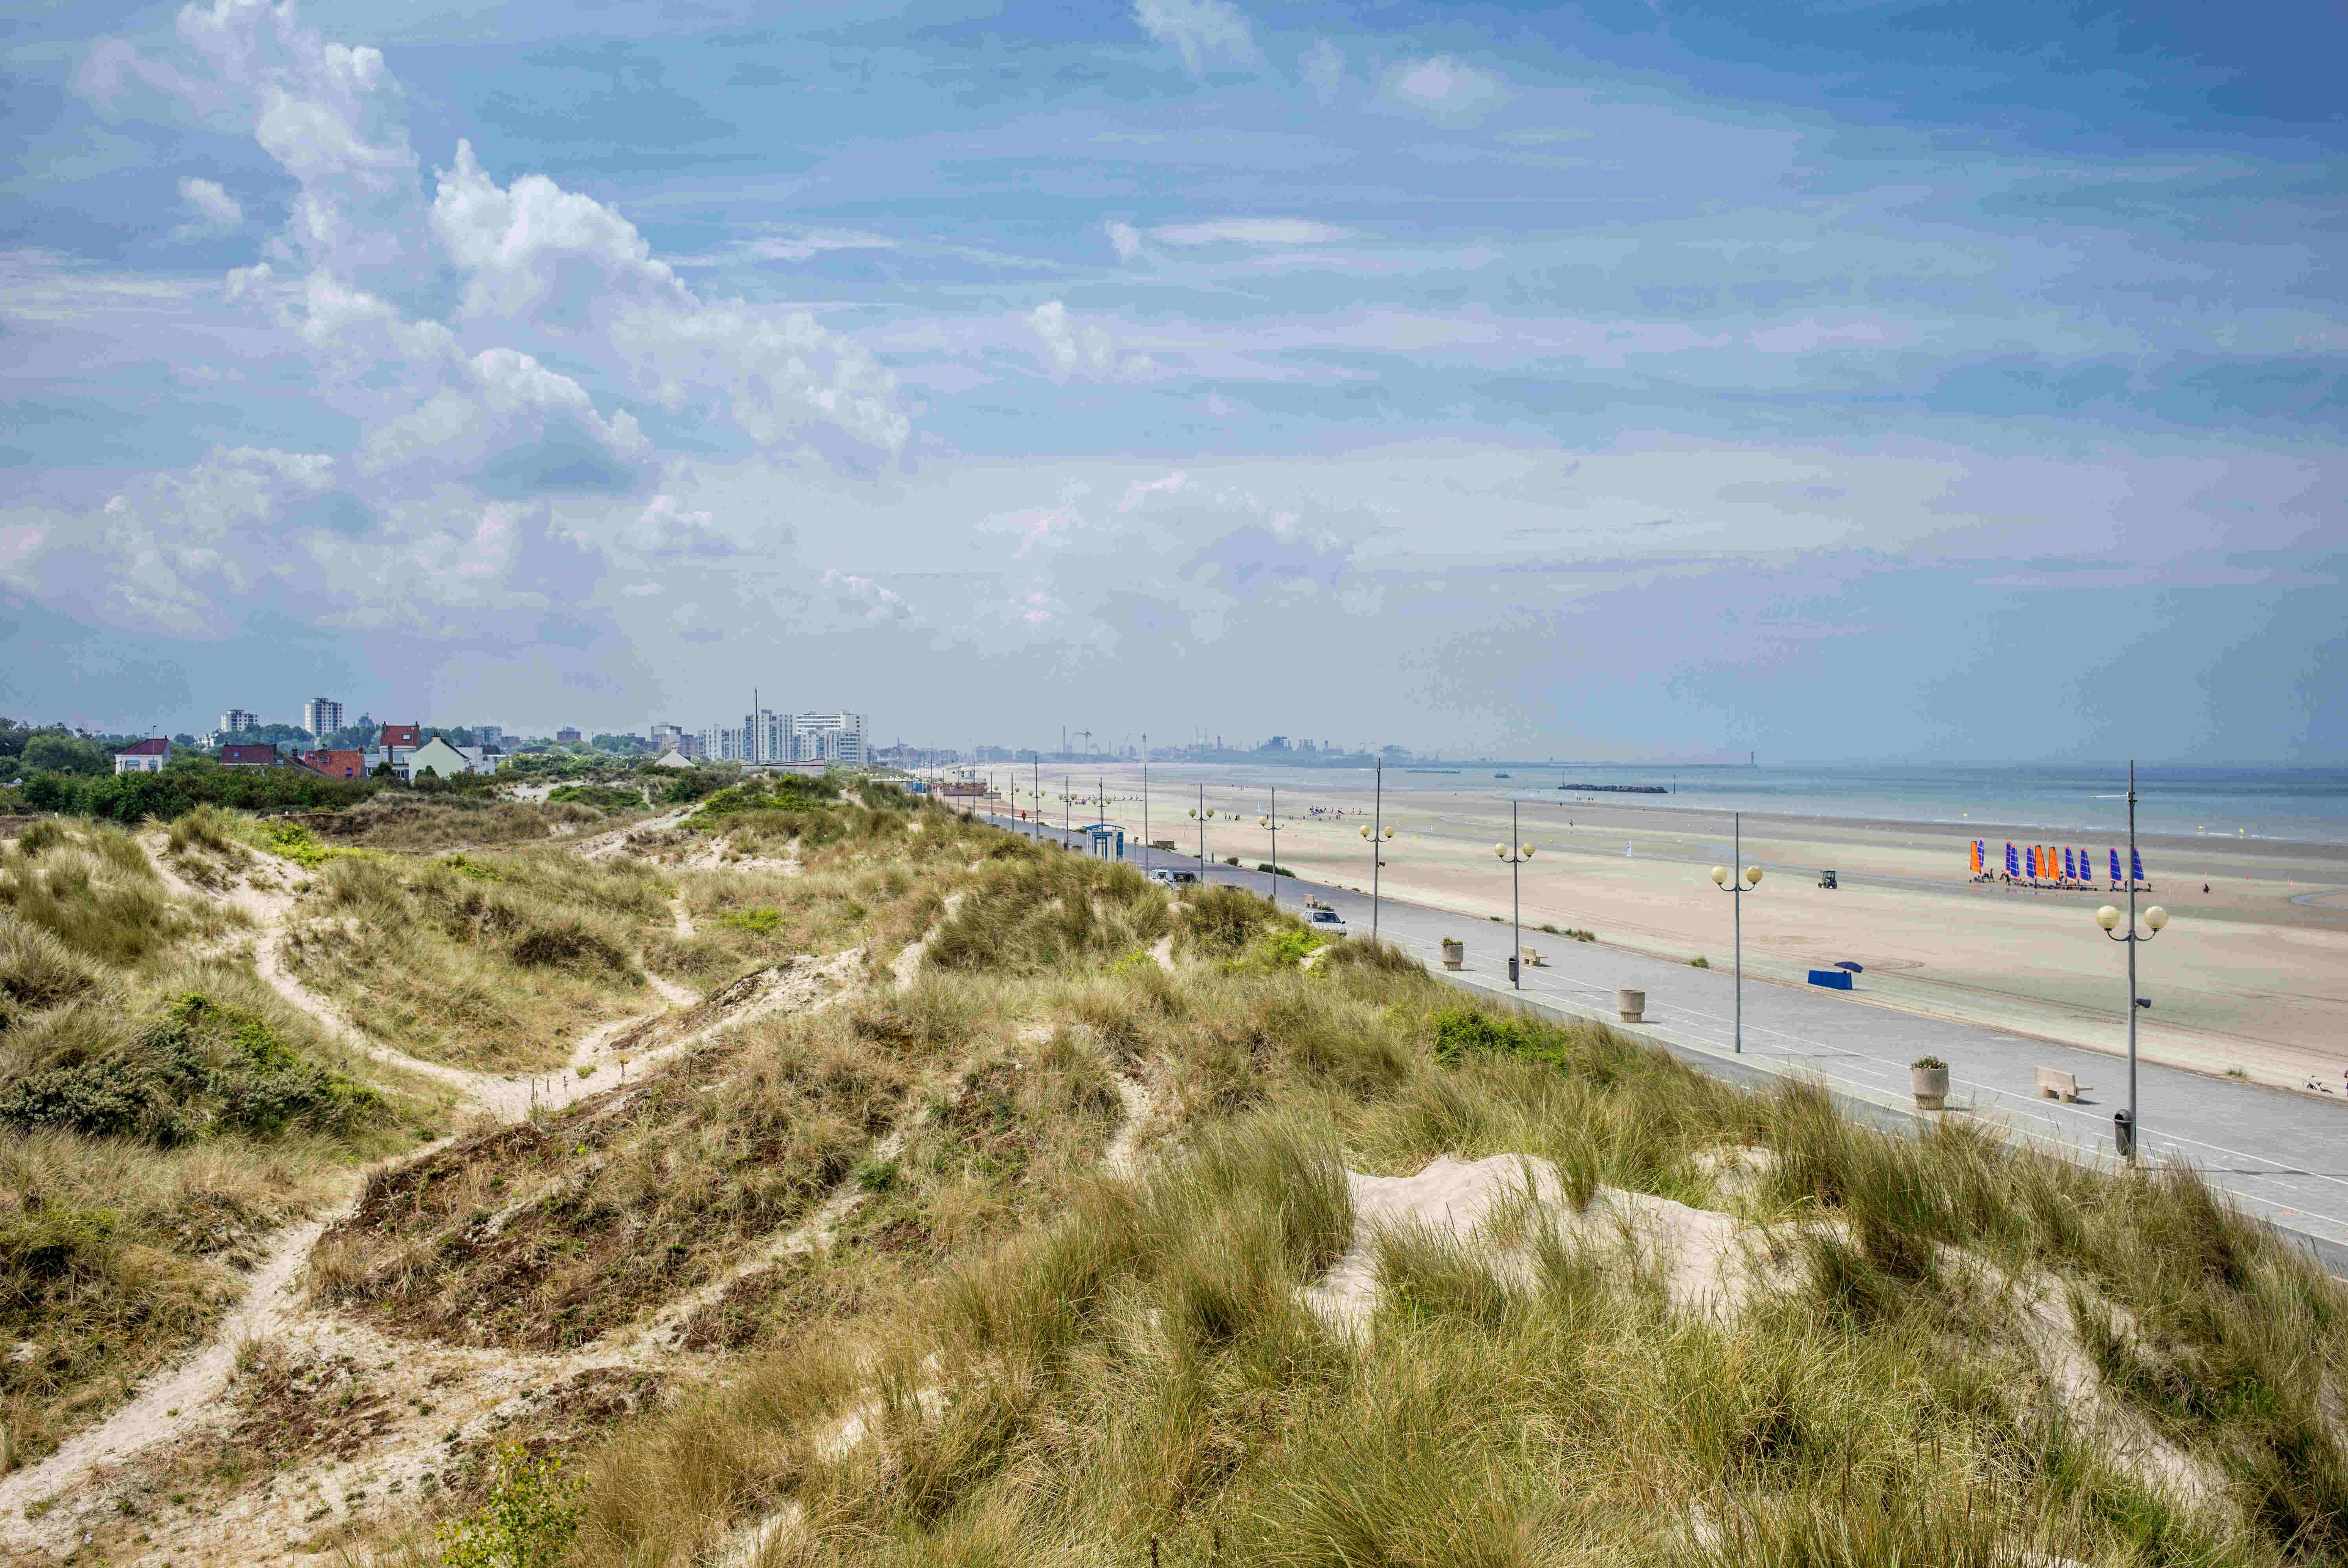 Dunkirk prepares for travellers to take note as the city features in a star-studded film